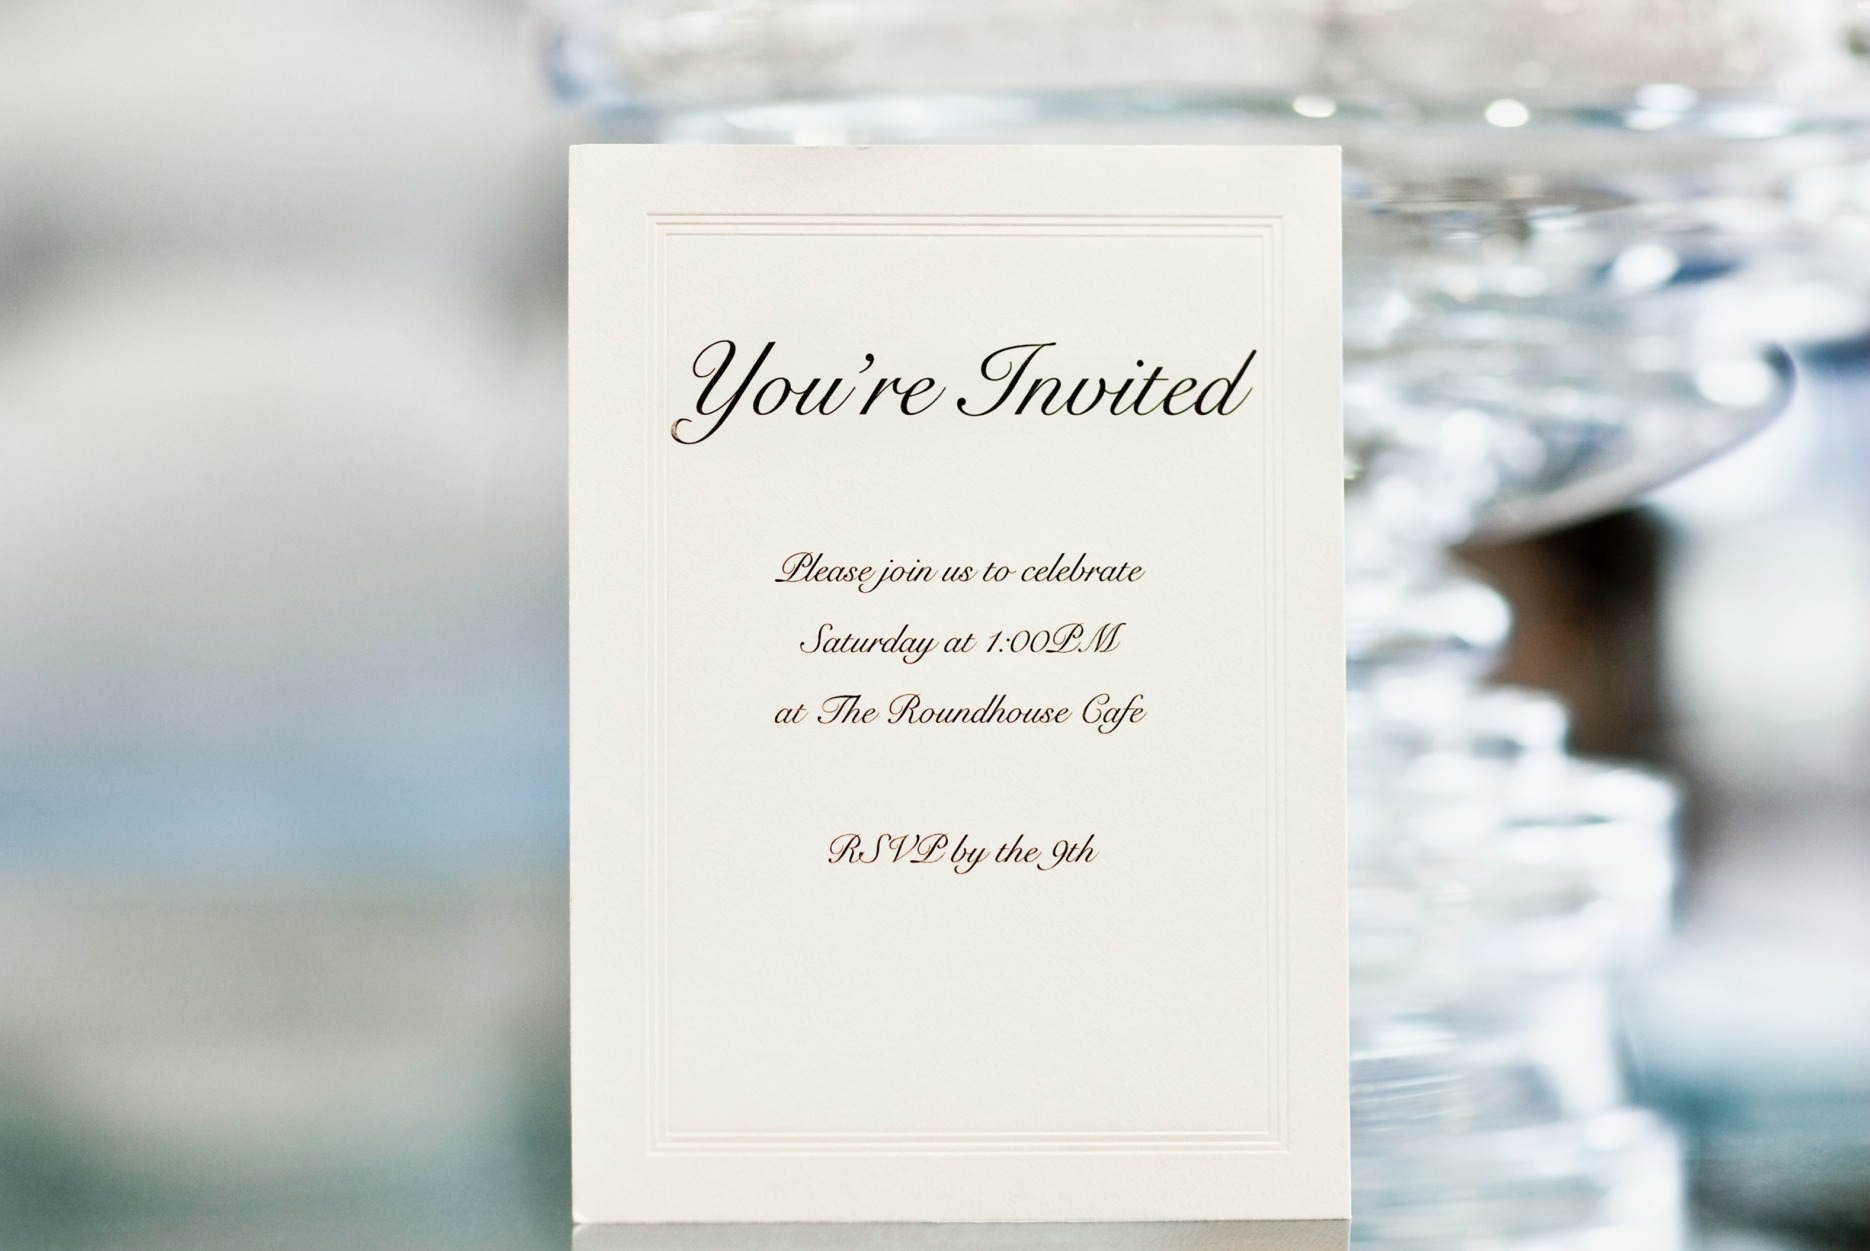 Wedding Card Invitation Messages: Ideas For Wedding Invitation Wording